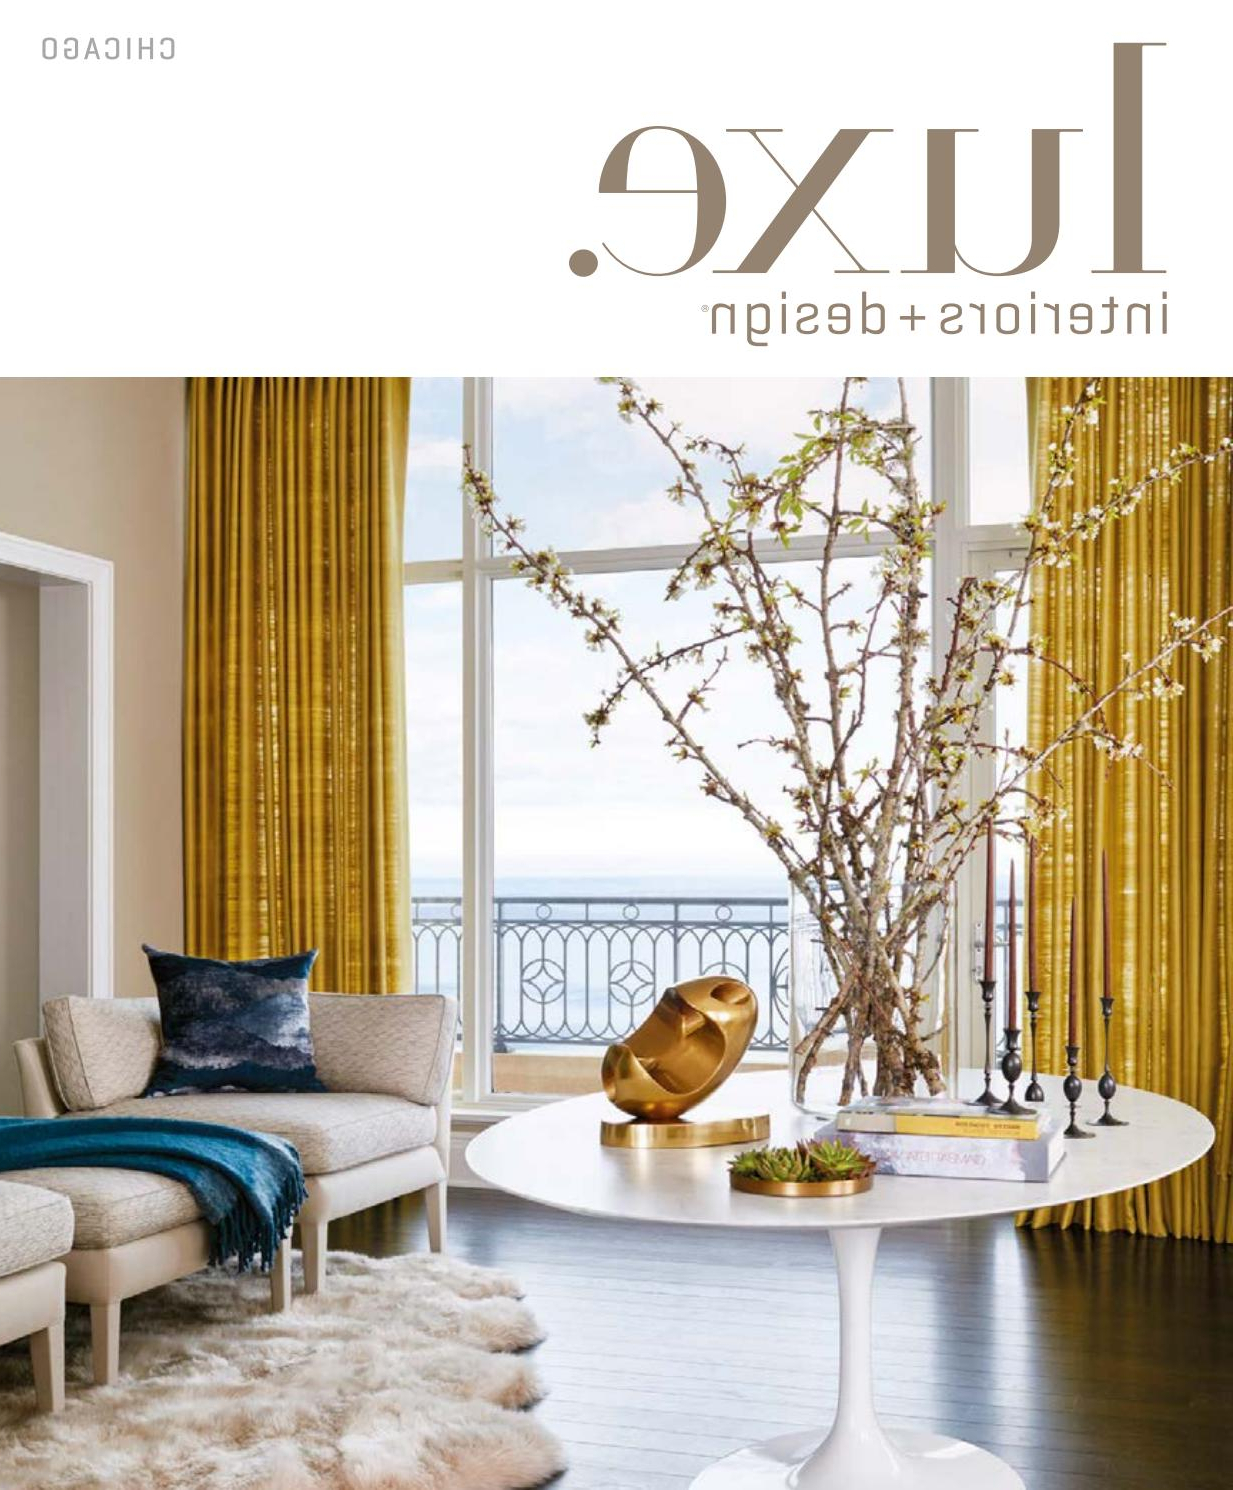 Luxe Magazine July/august 2017 Chicagosandow® – Issuu With Popular Glendale Heights Birds And Butterflies Garden Stools (View 18 of 30)